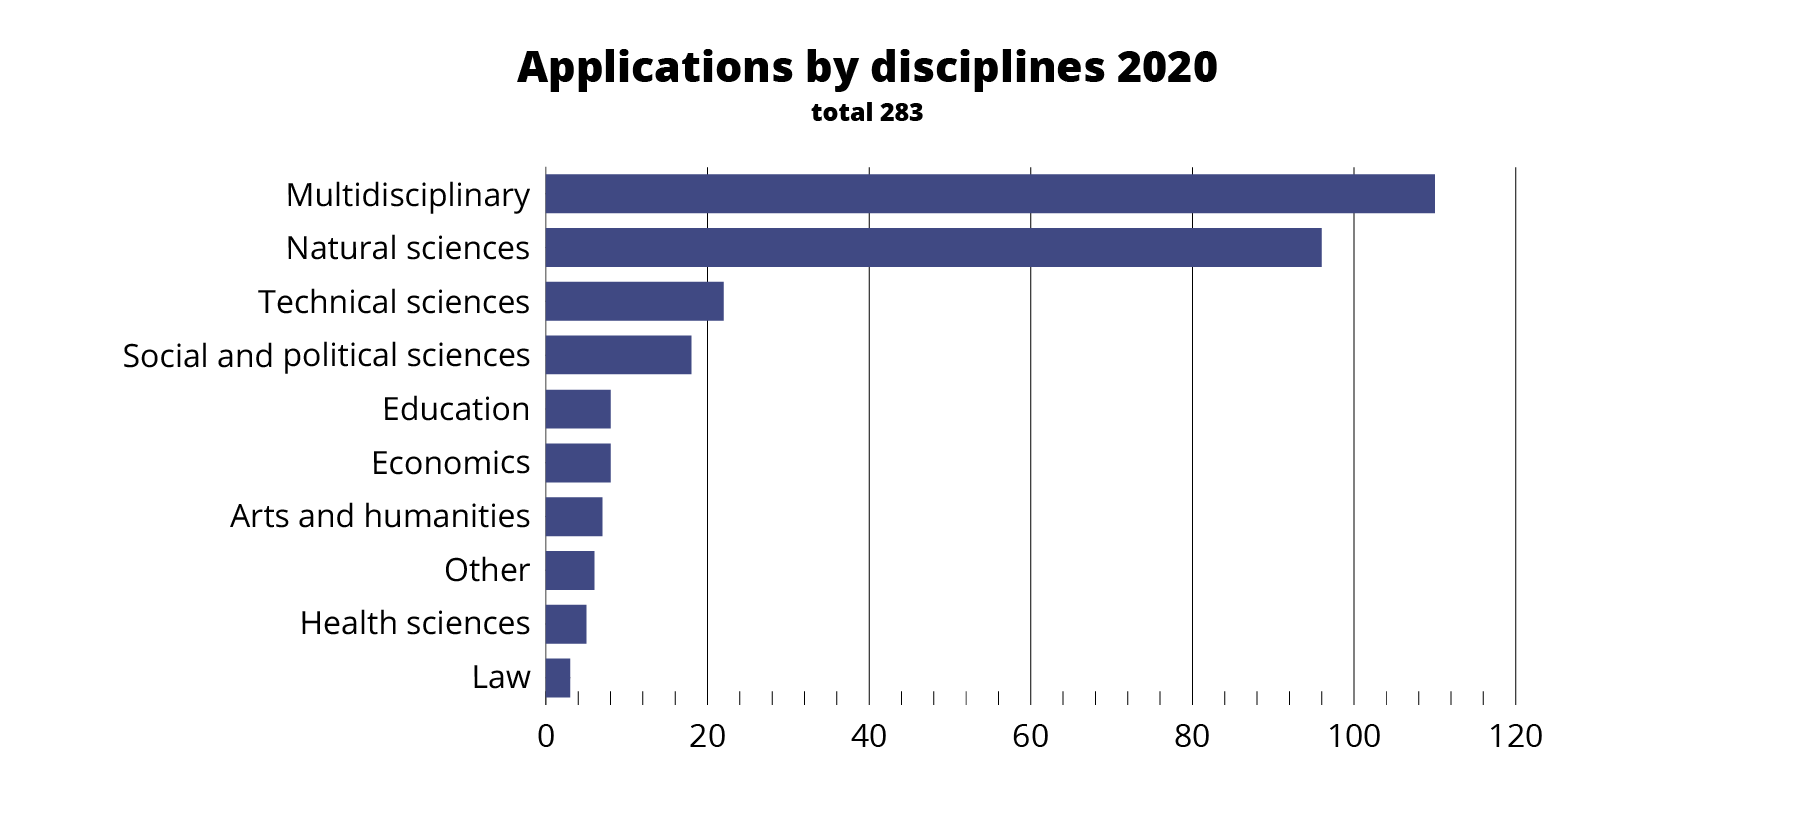 Nessling_Apurahahaku_Applications by field 2020